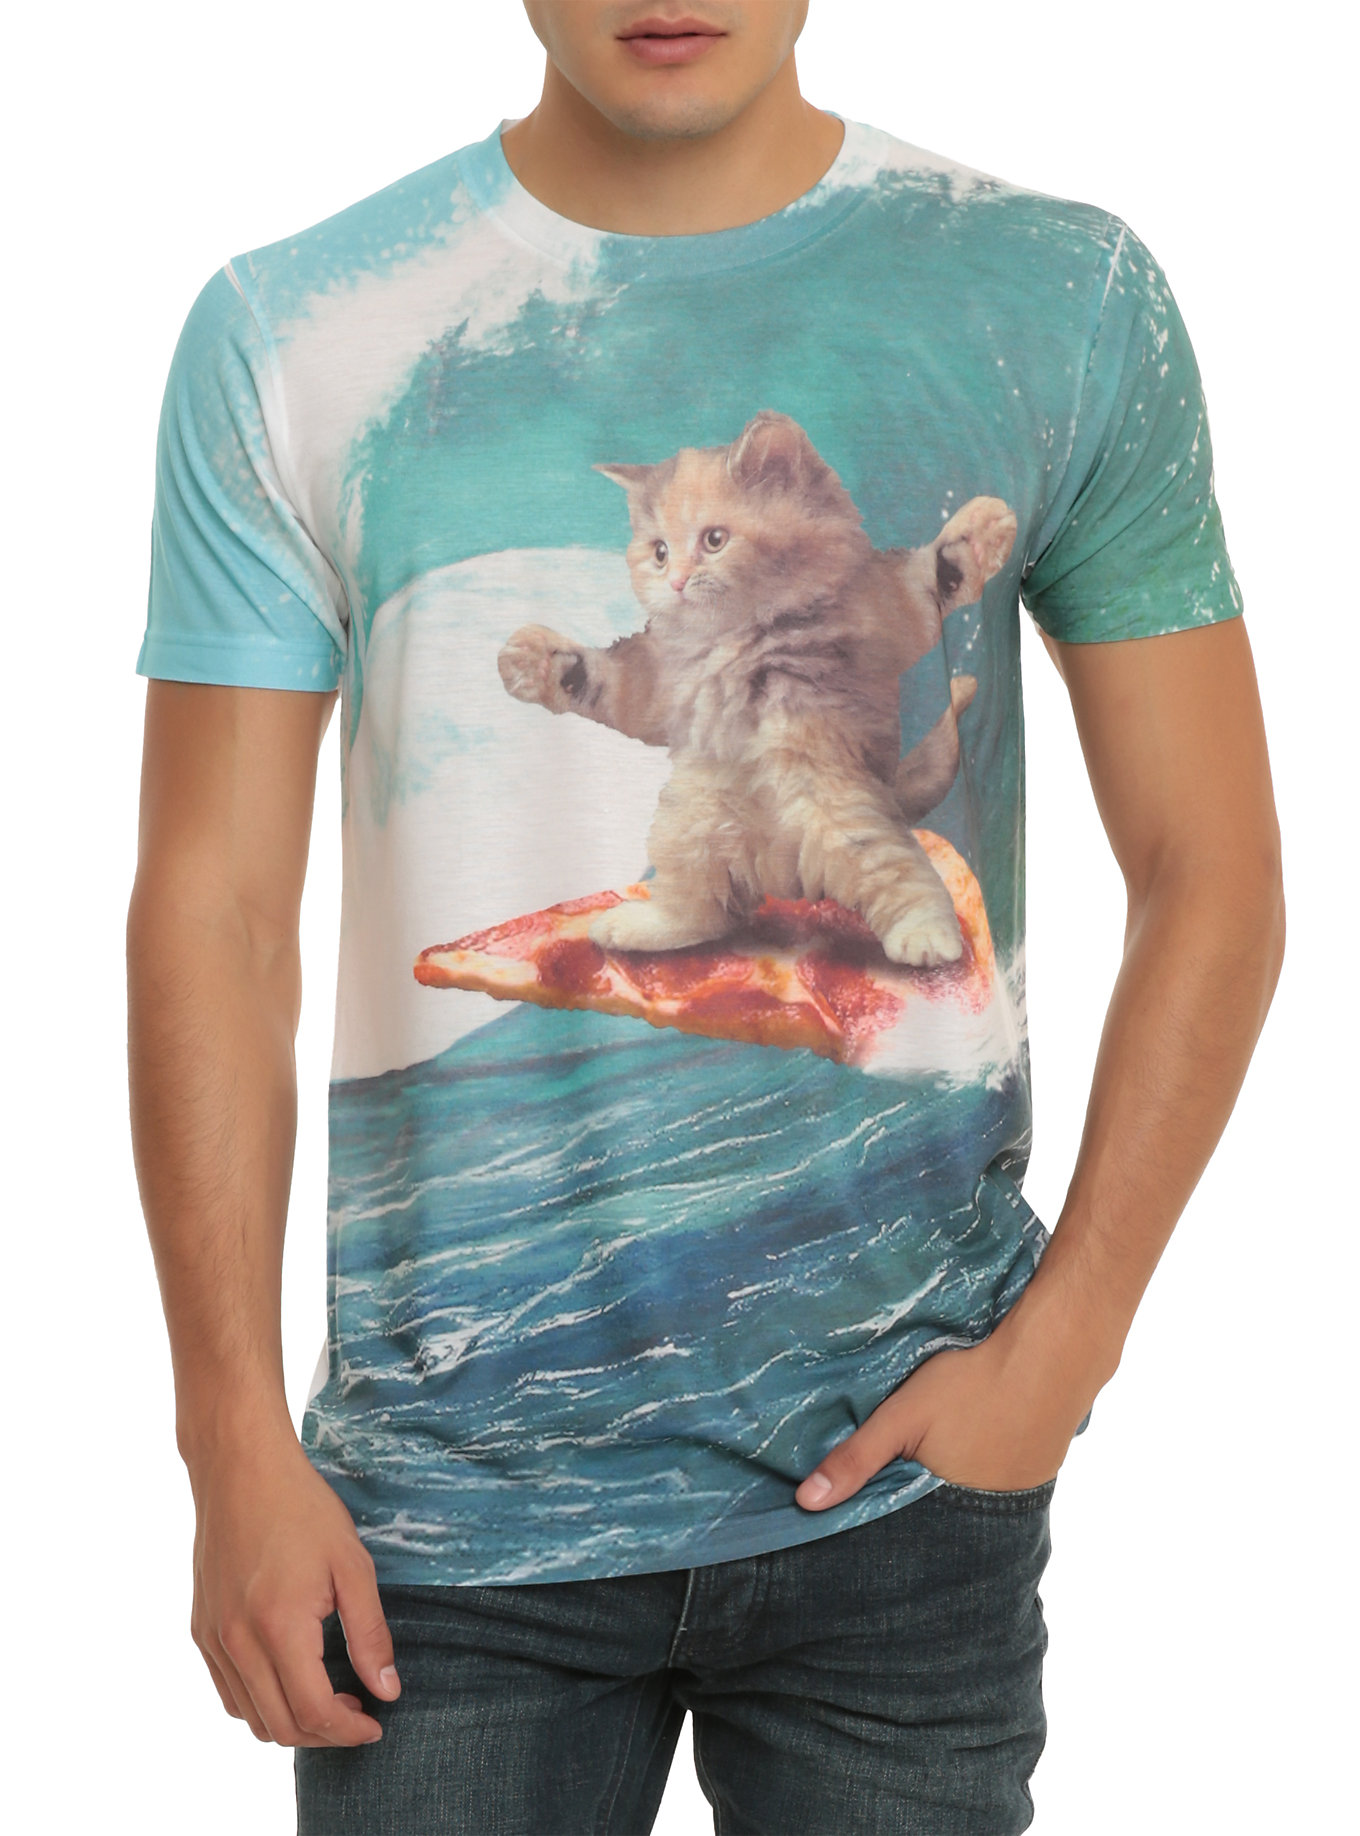 cat surfing pizza shirt